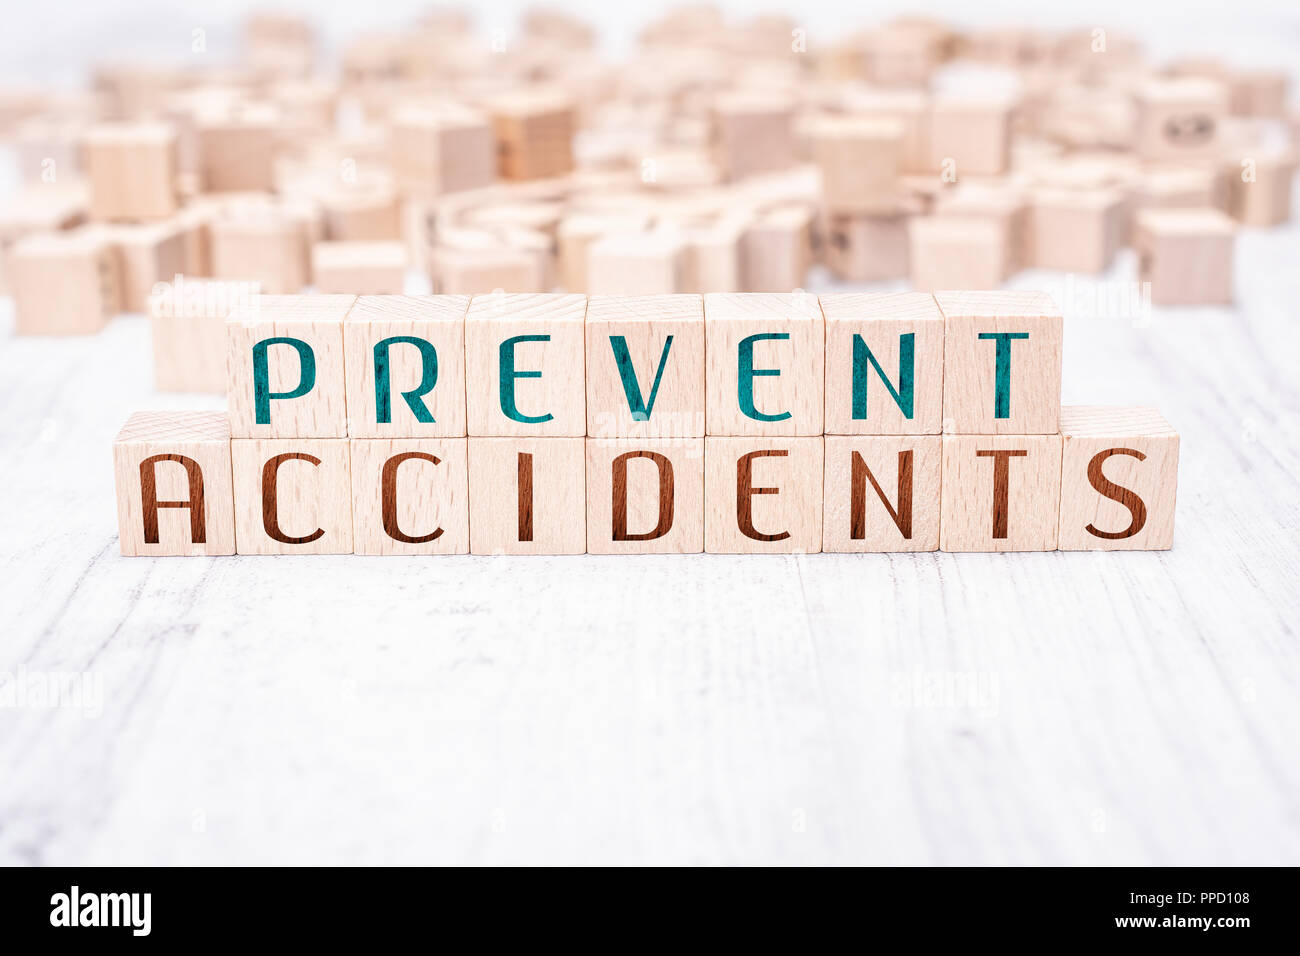 The Words Prevent Accidents Formed By Wooden Blocks On A White Table - Stock Image